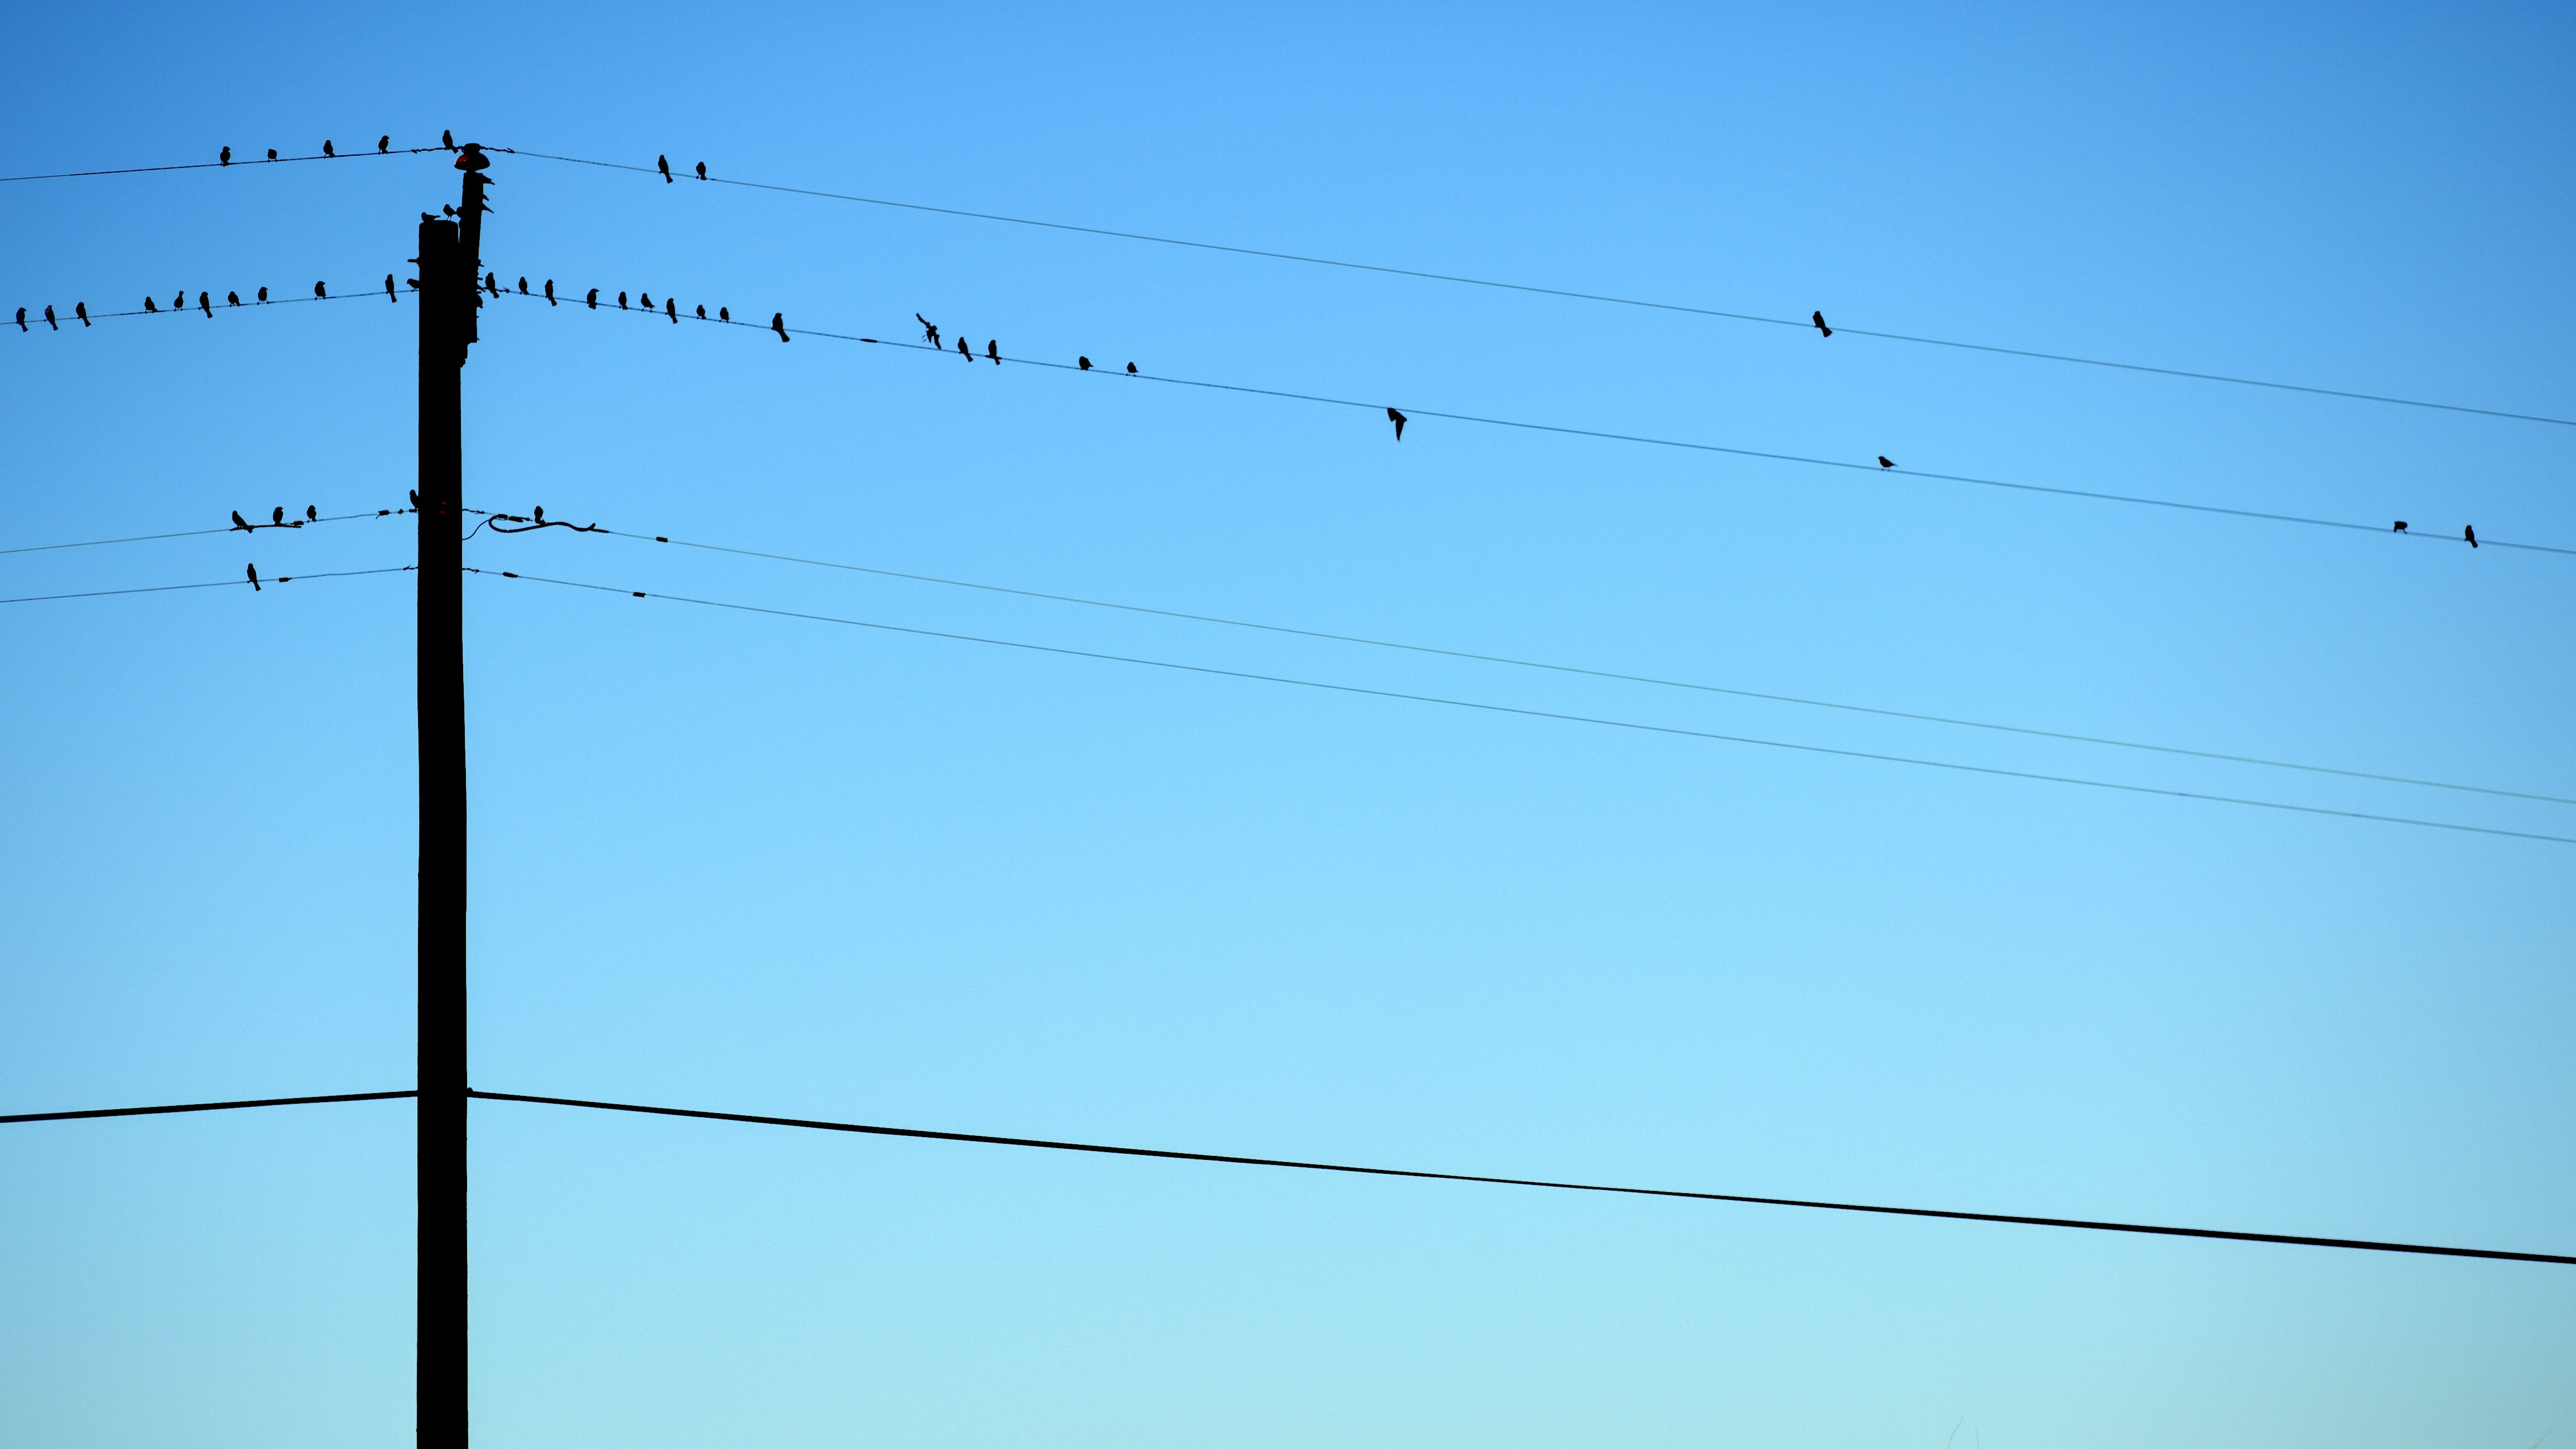 silhouette of birds on electric wires